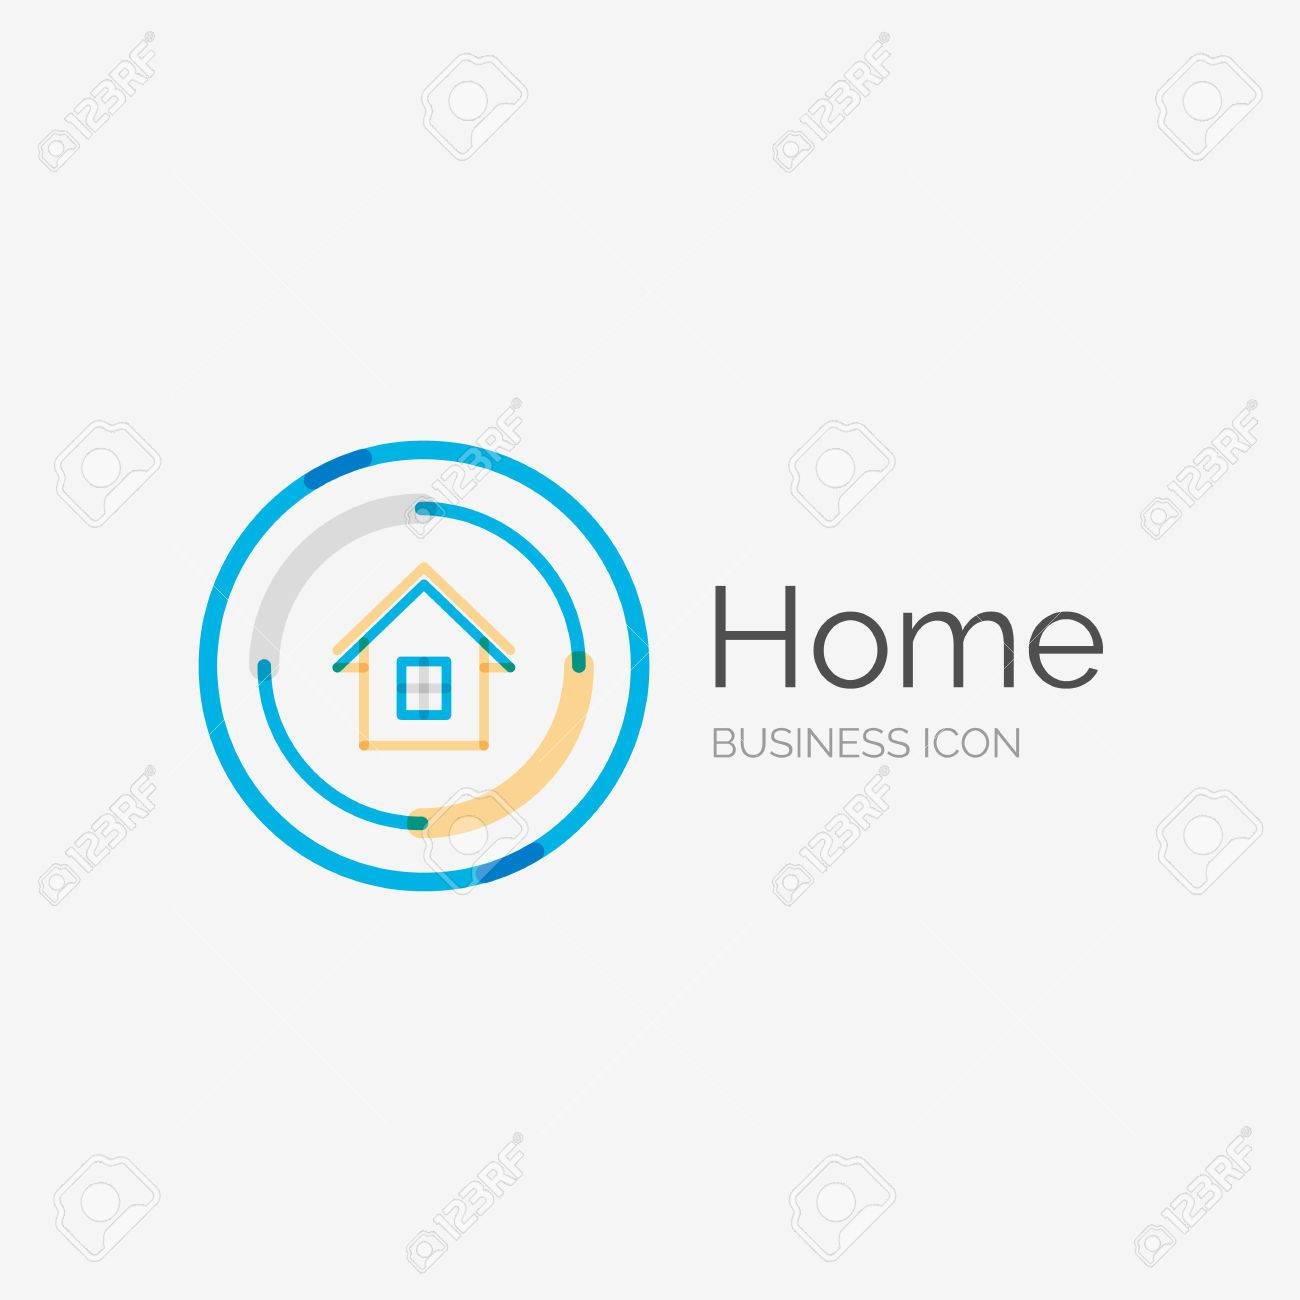 House design logo - Thin Line Neat Design Logo Clean Modern Concept Home House Idea Stock Vector